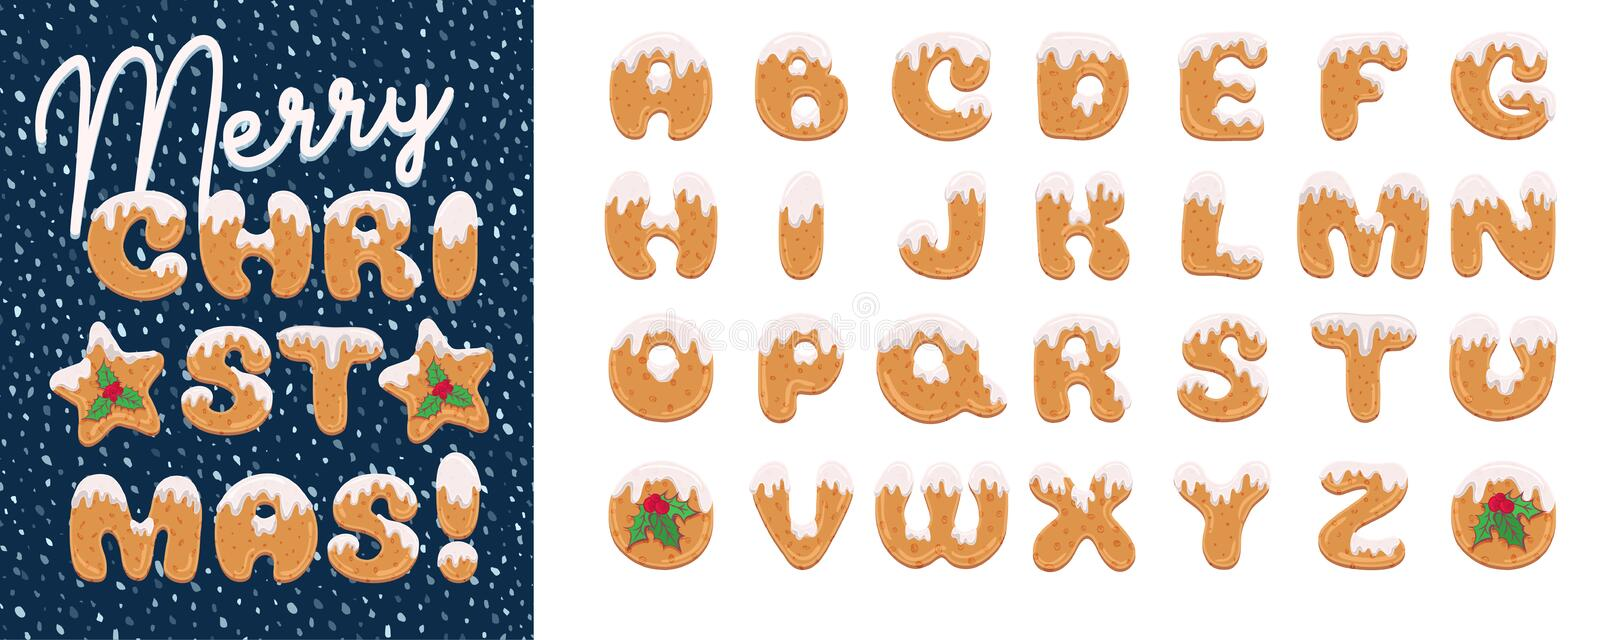 Handmade Christmas gingerbread cookies alphabet set. Cartoon style font. Art design letter. Festive lettering greeting vector illustration